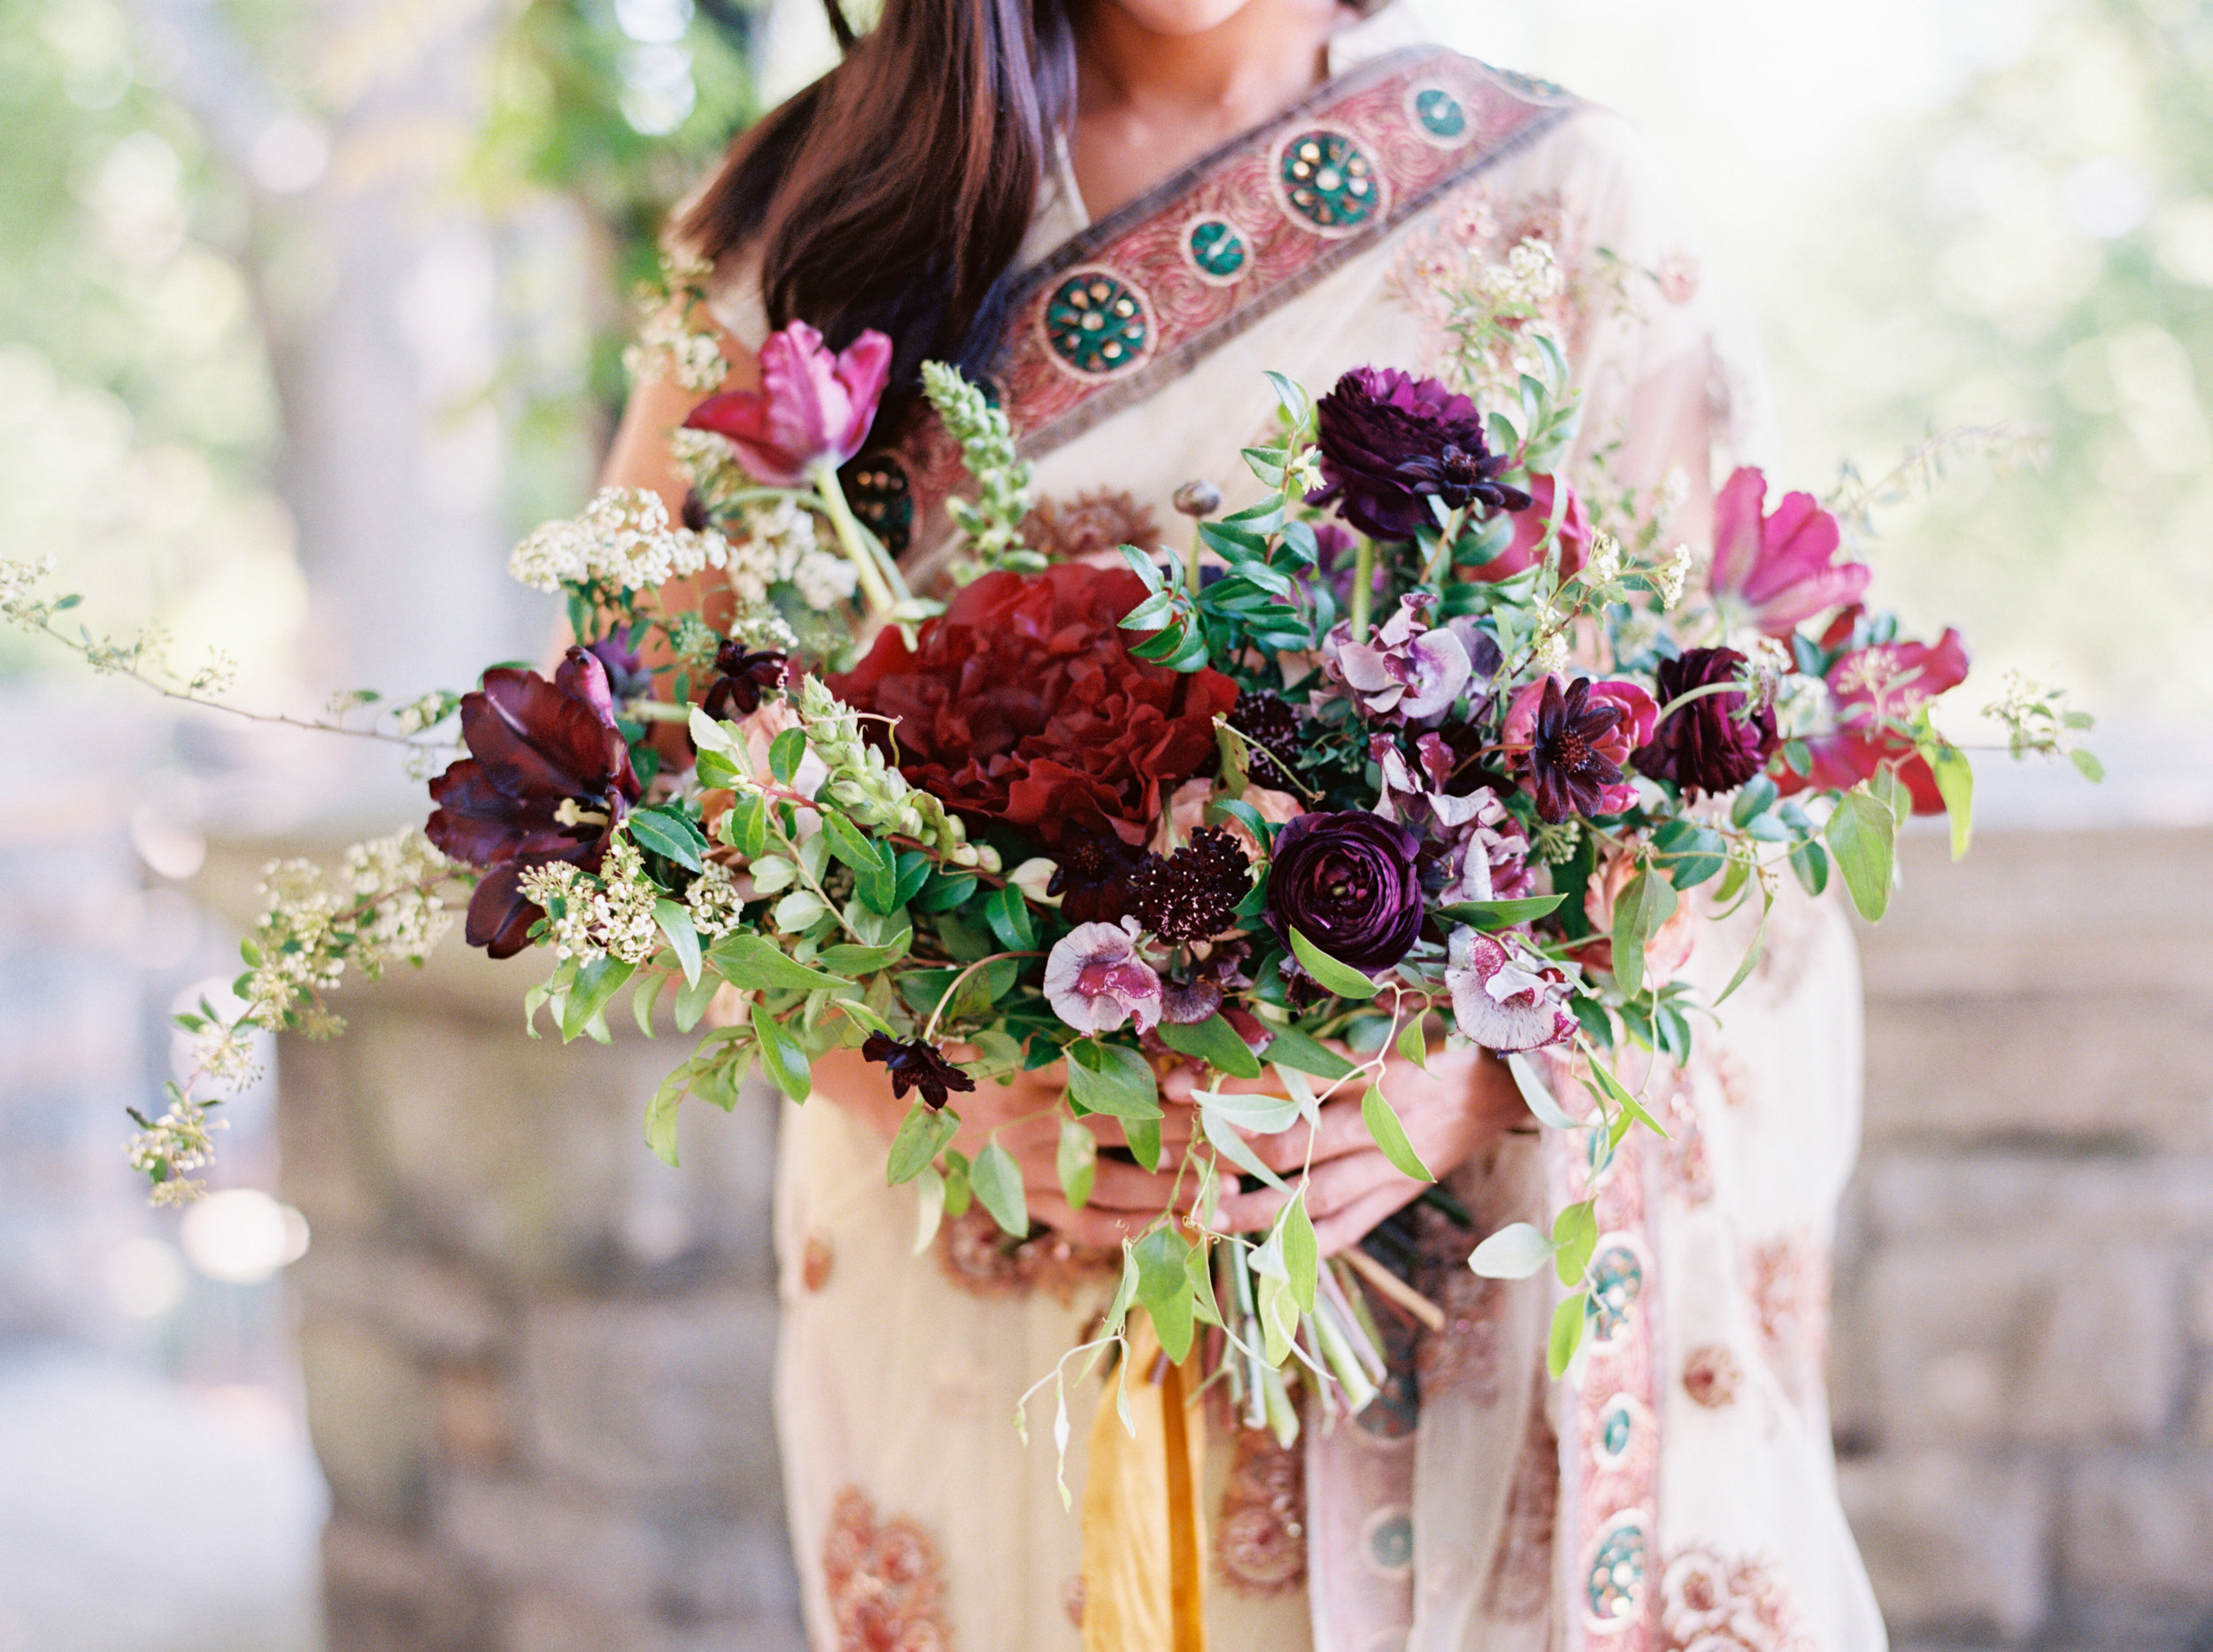 Indian Bridal Portraits at Cheekwood // Lush, untamed bridal bouquet in shades of plum and marsala